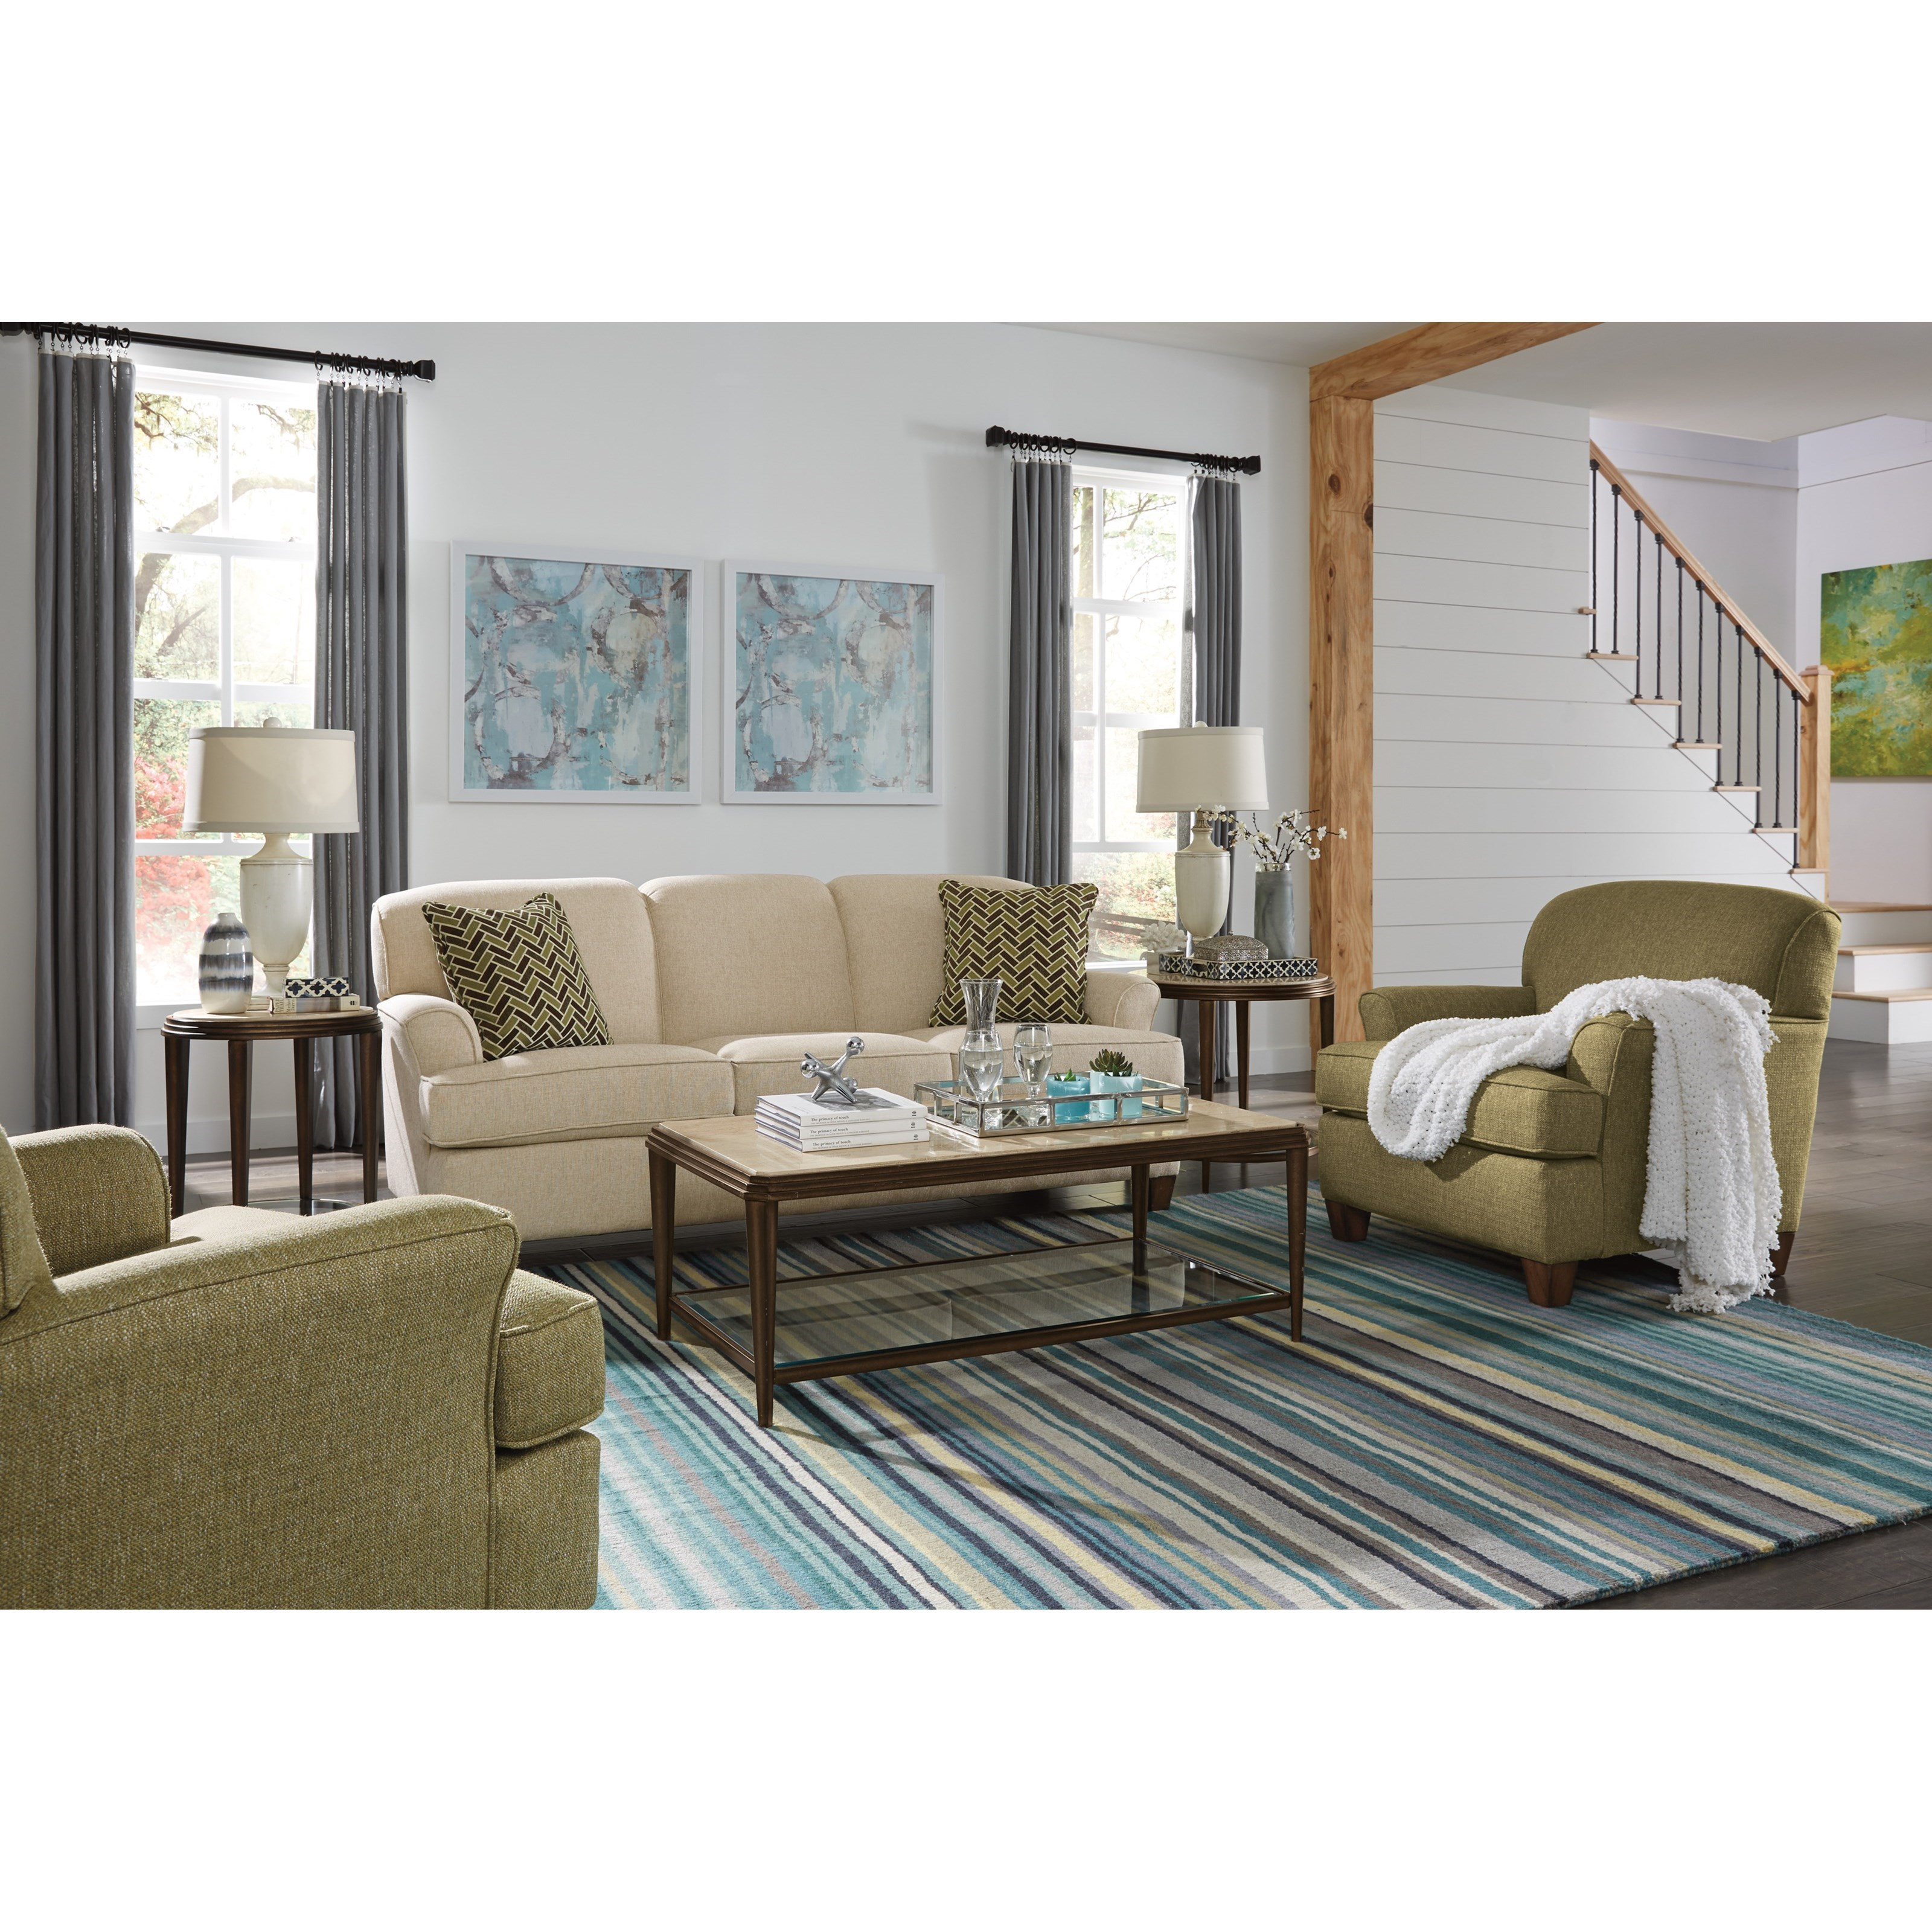 Atlantis Living Room Group by Flexsteel at Rooms and Rest